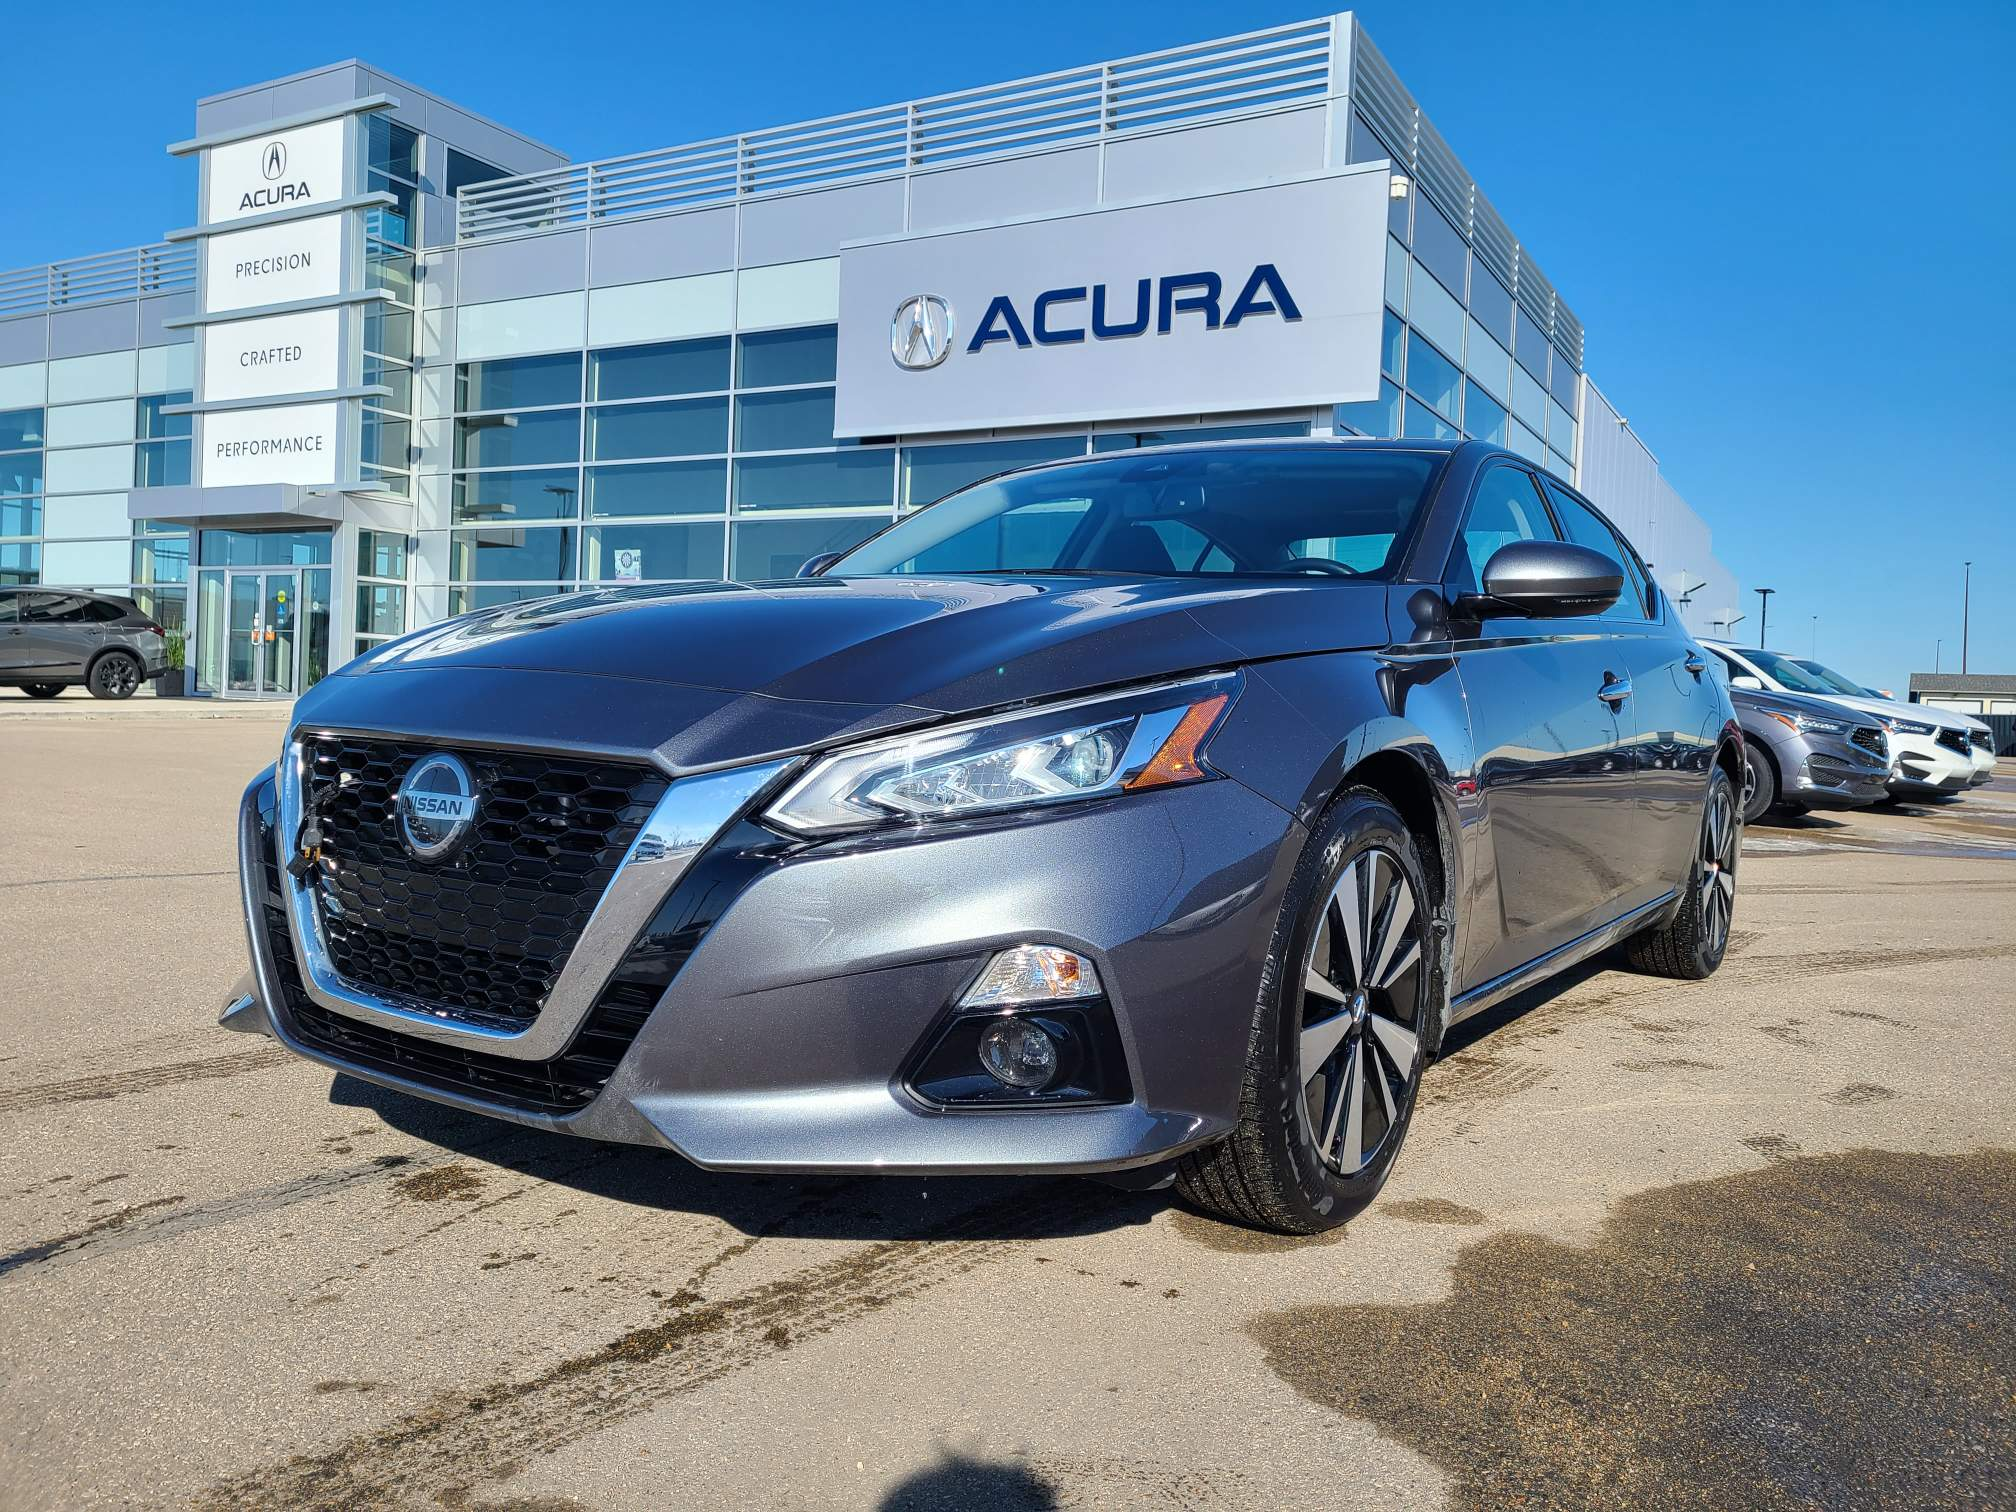 used 2019 Nissan Altima car, priced at $24,586